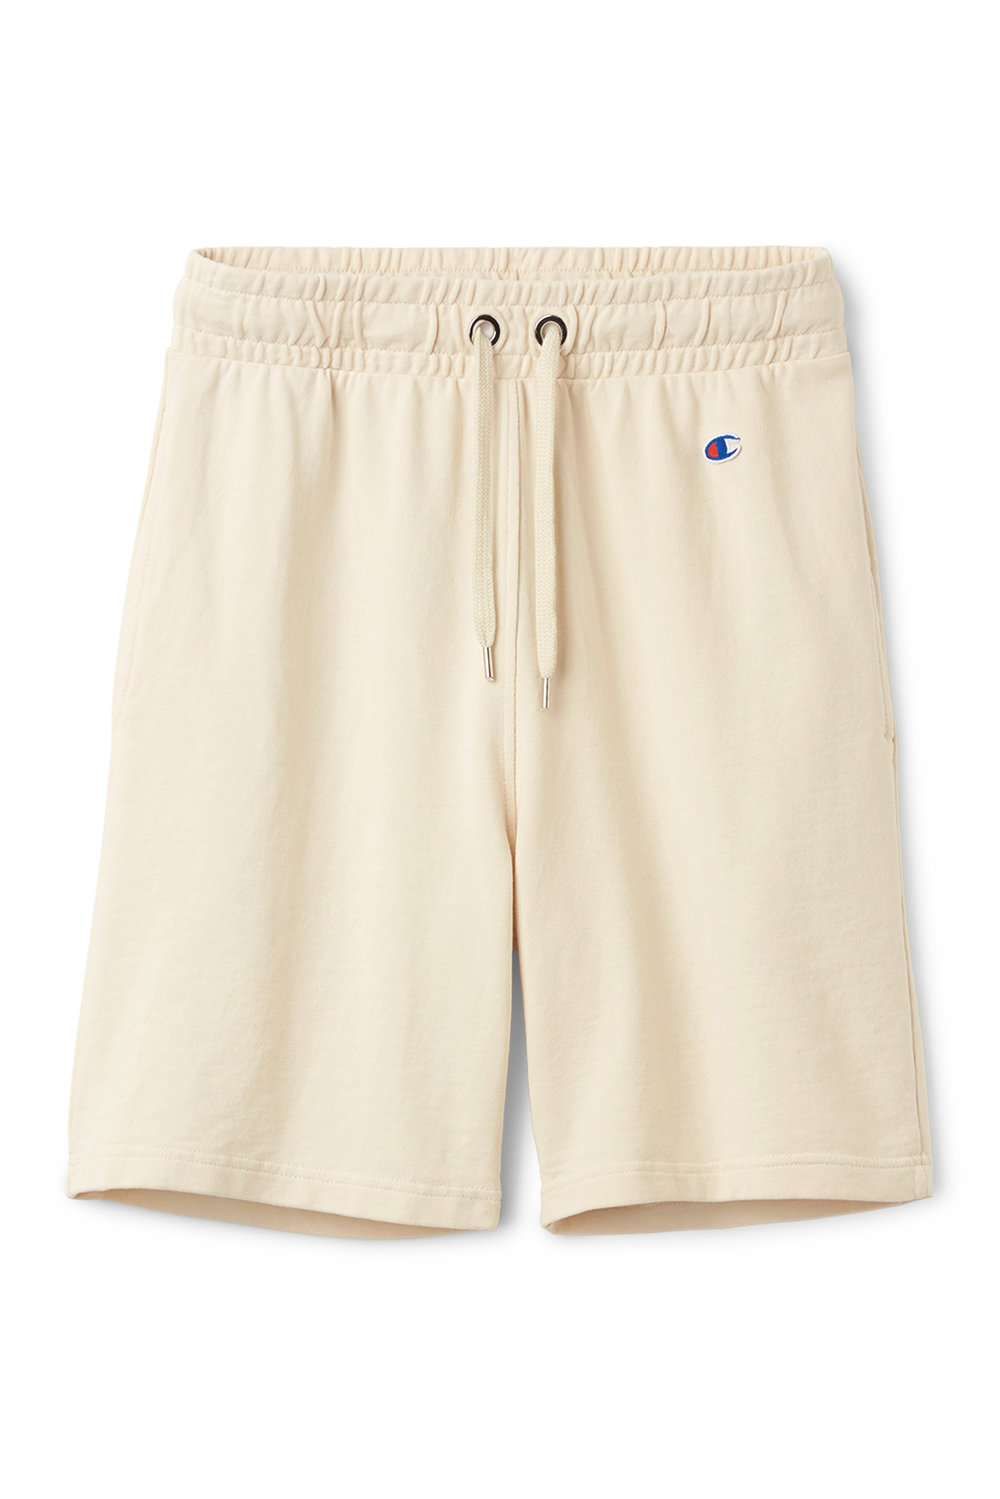 Champion_Shorts_Beige_0_0.jpg